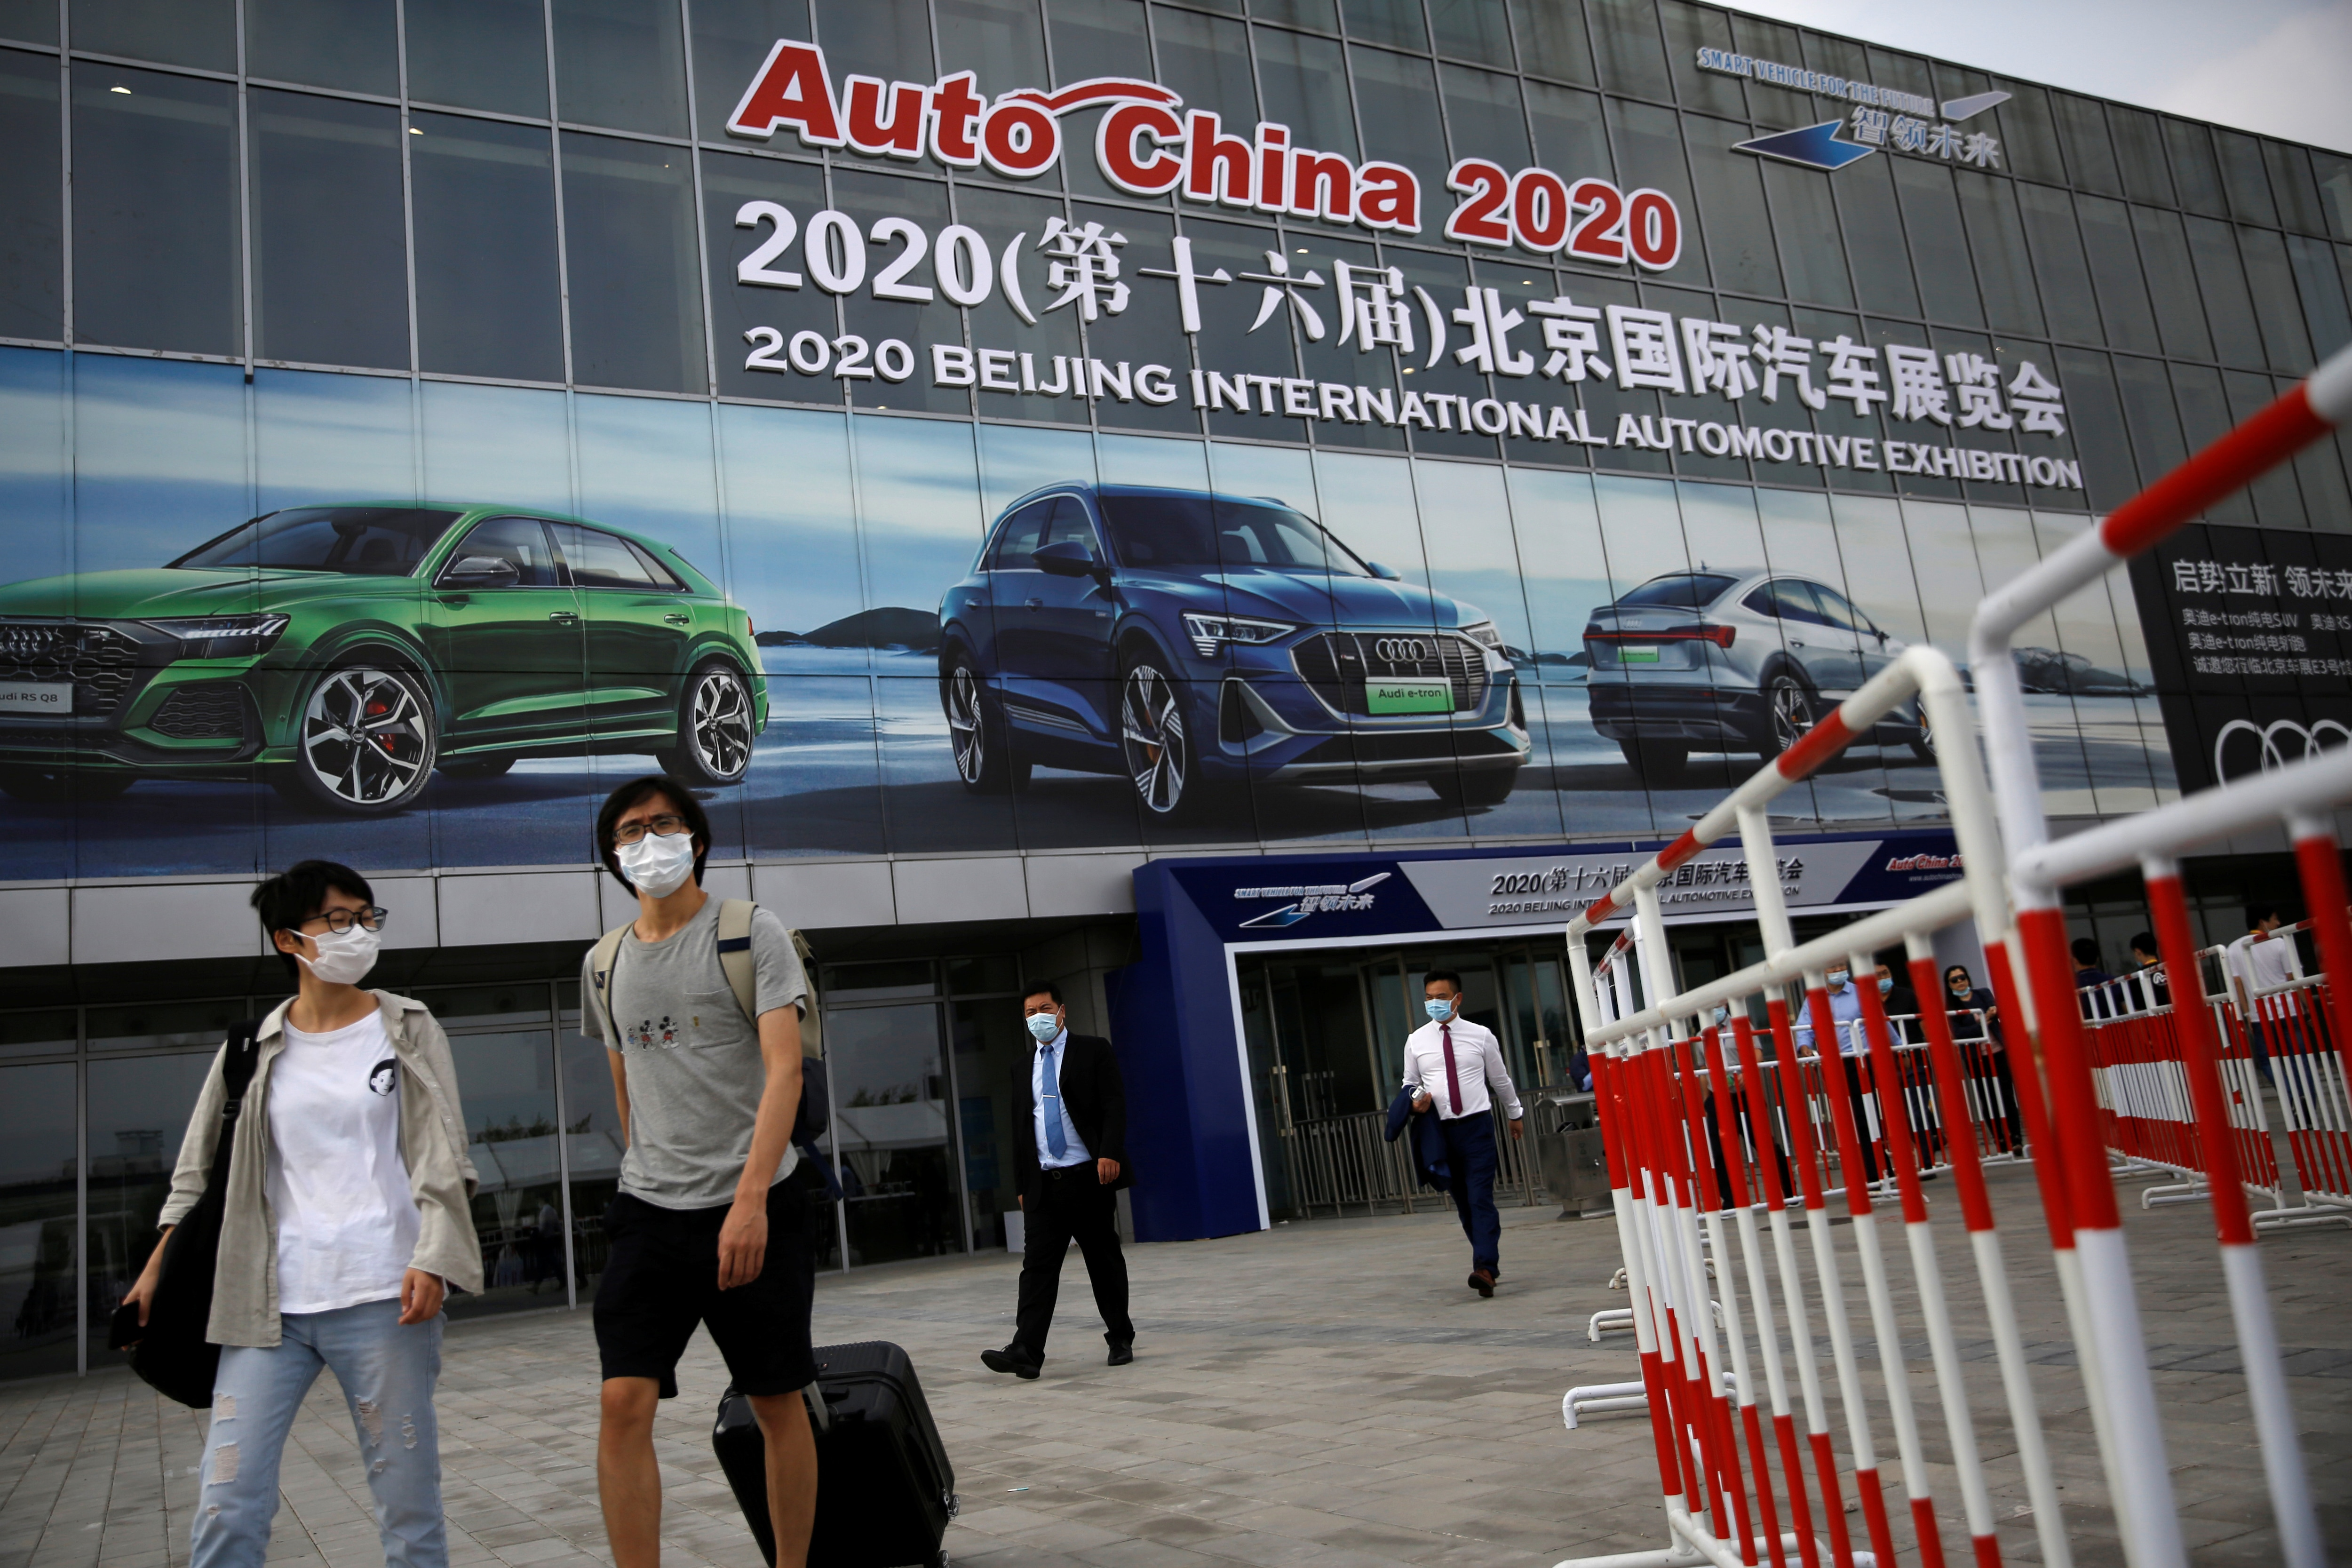 Beijing Auto Show, also called Beijing Motor Show and Auto China 2020, got underway on September 26 with car makers - local and global - attempting to find favour among prospective buyers.The auto exhibition was scheduled to be held earlier this year but was delayed due to the Covid-19 pandemic. (REUTERS)